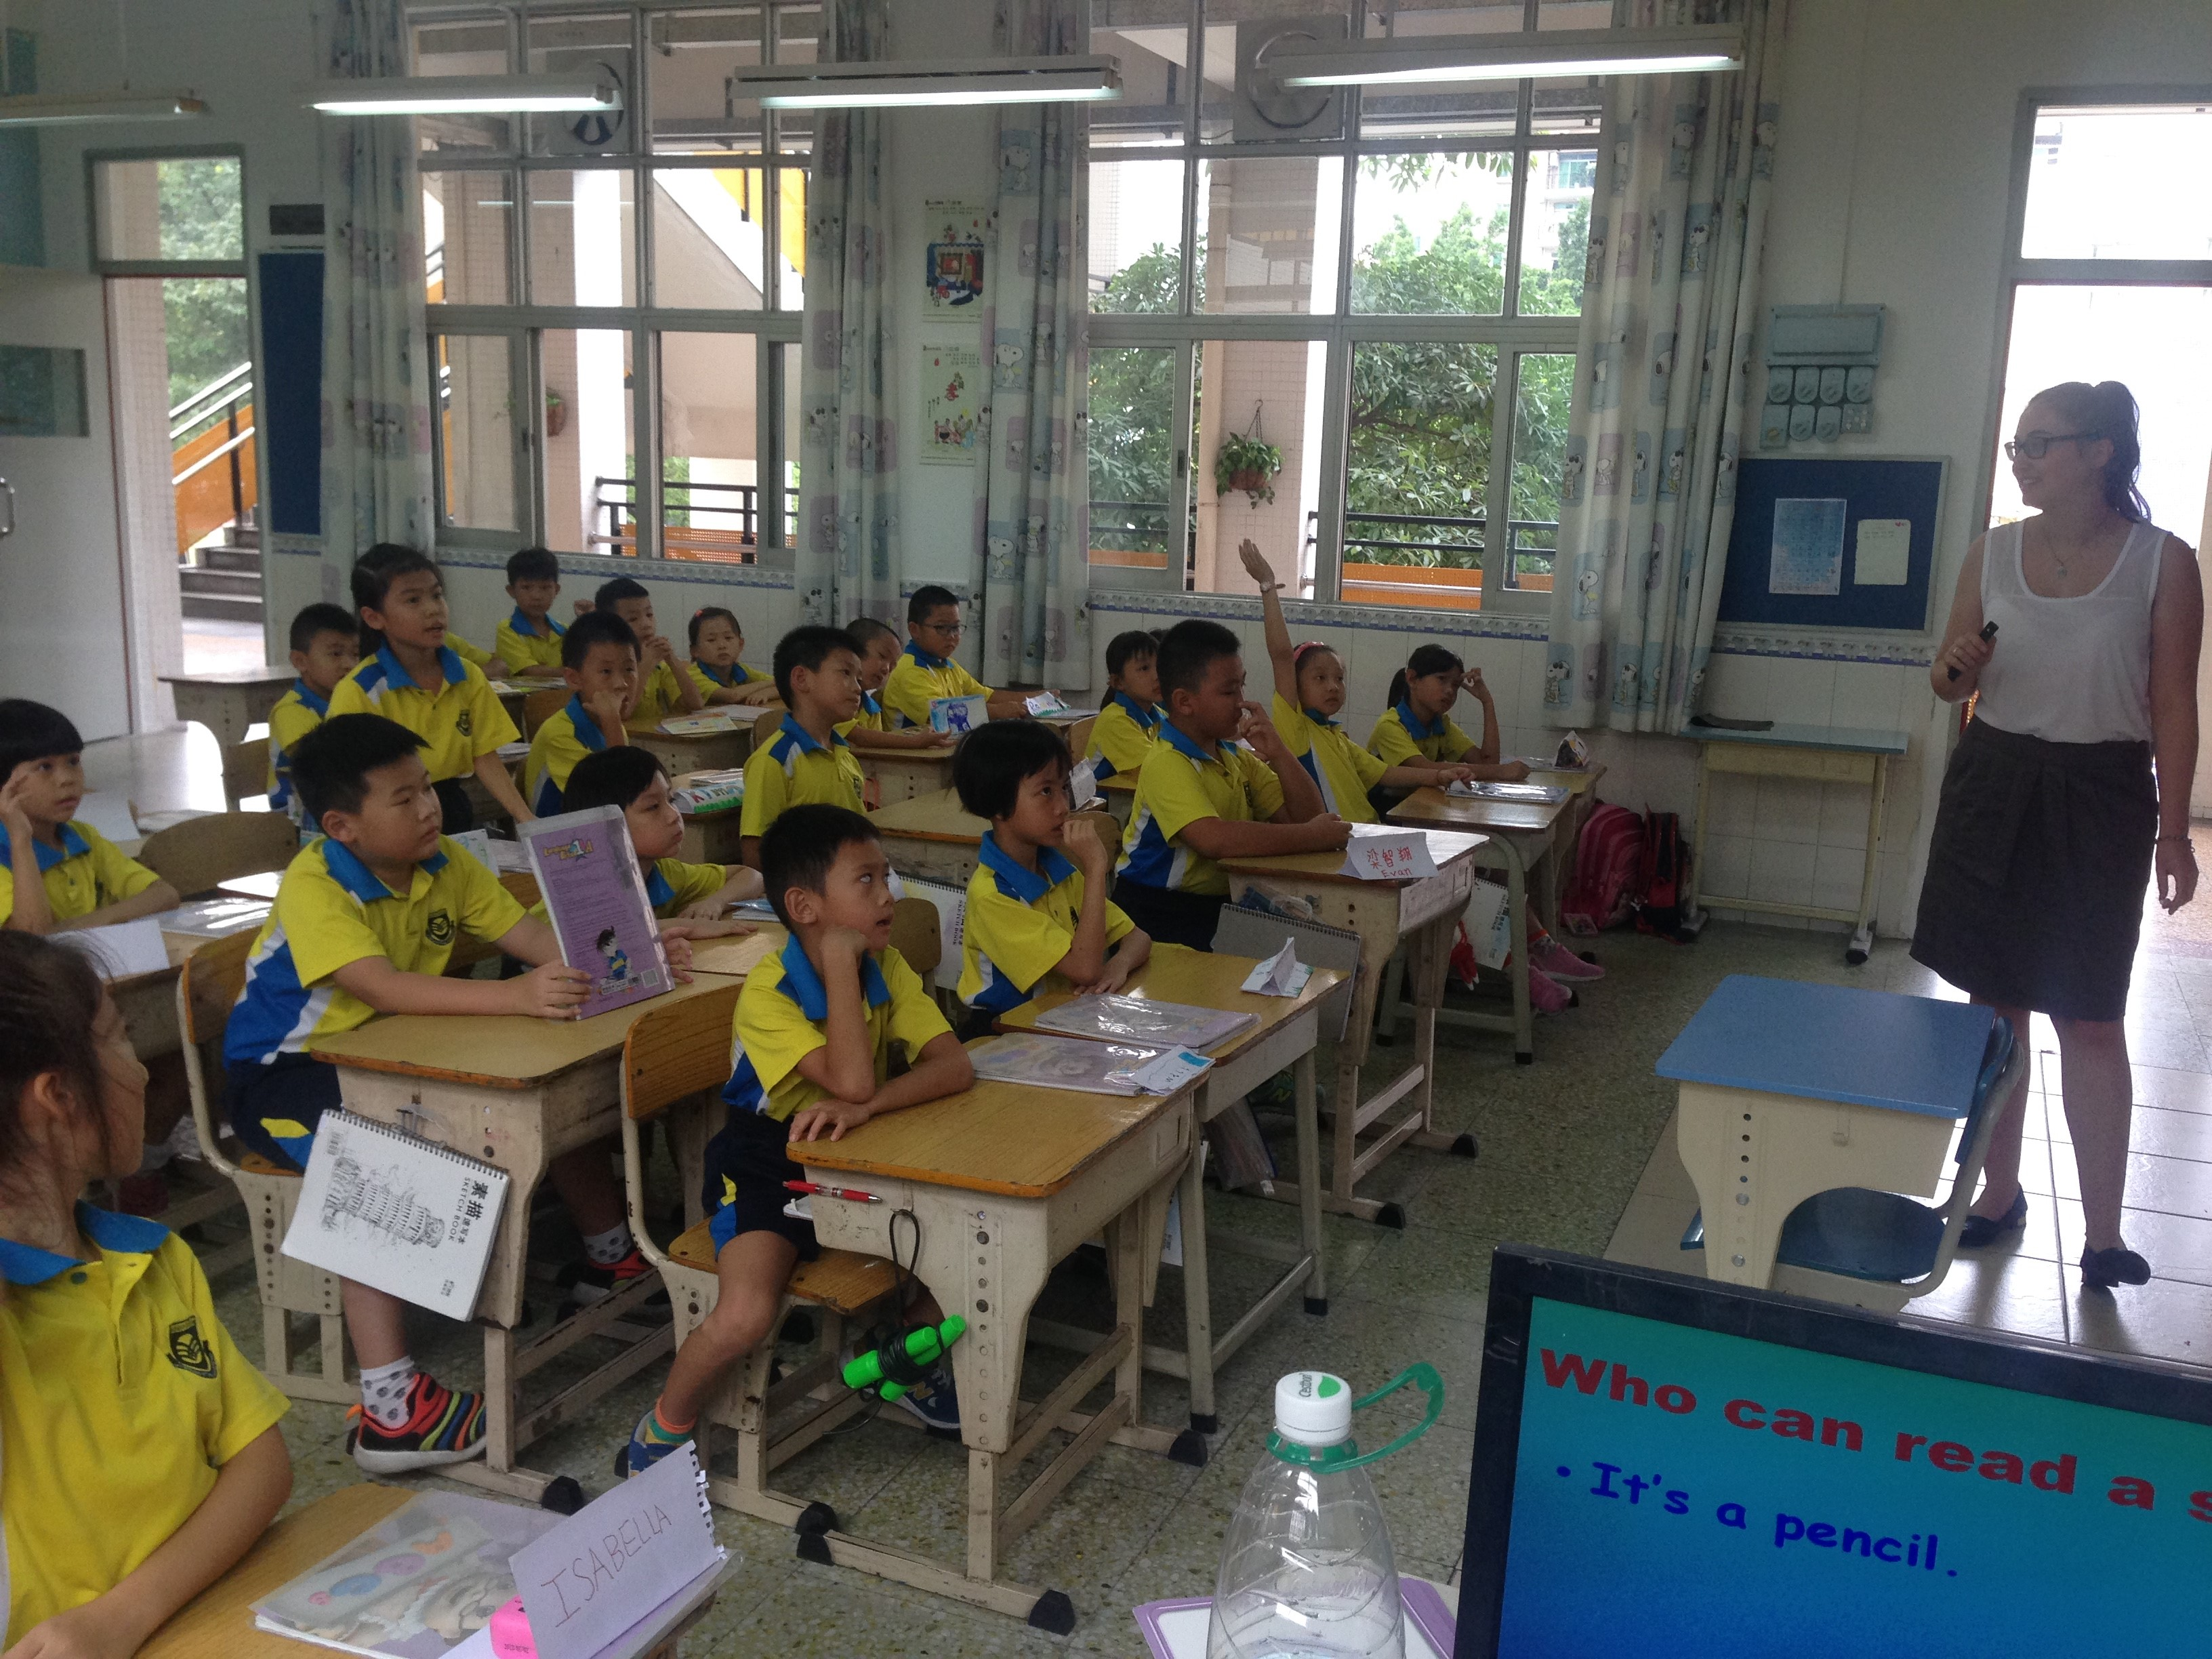 i-to-i China intern Danni teaching a lesson at school in Foshan, China